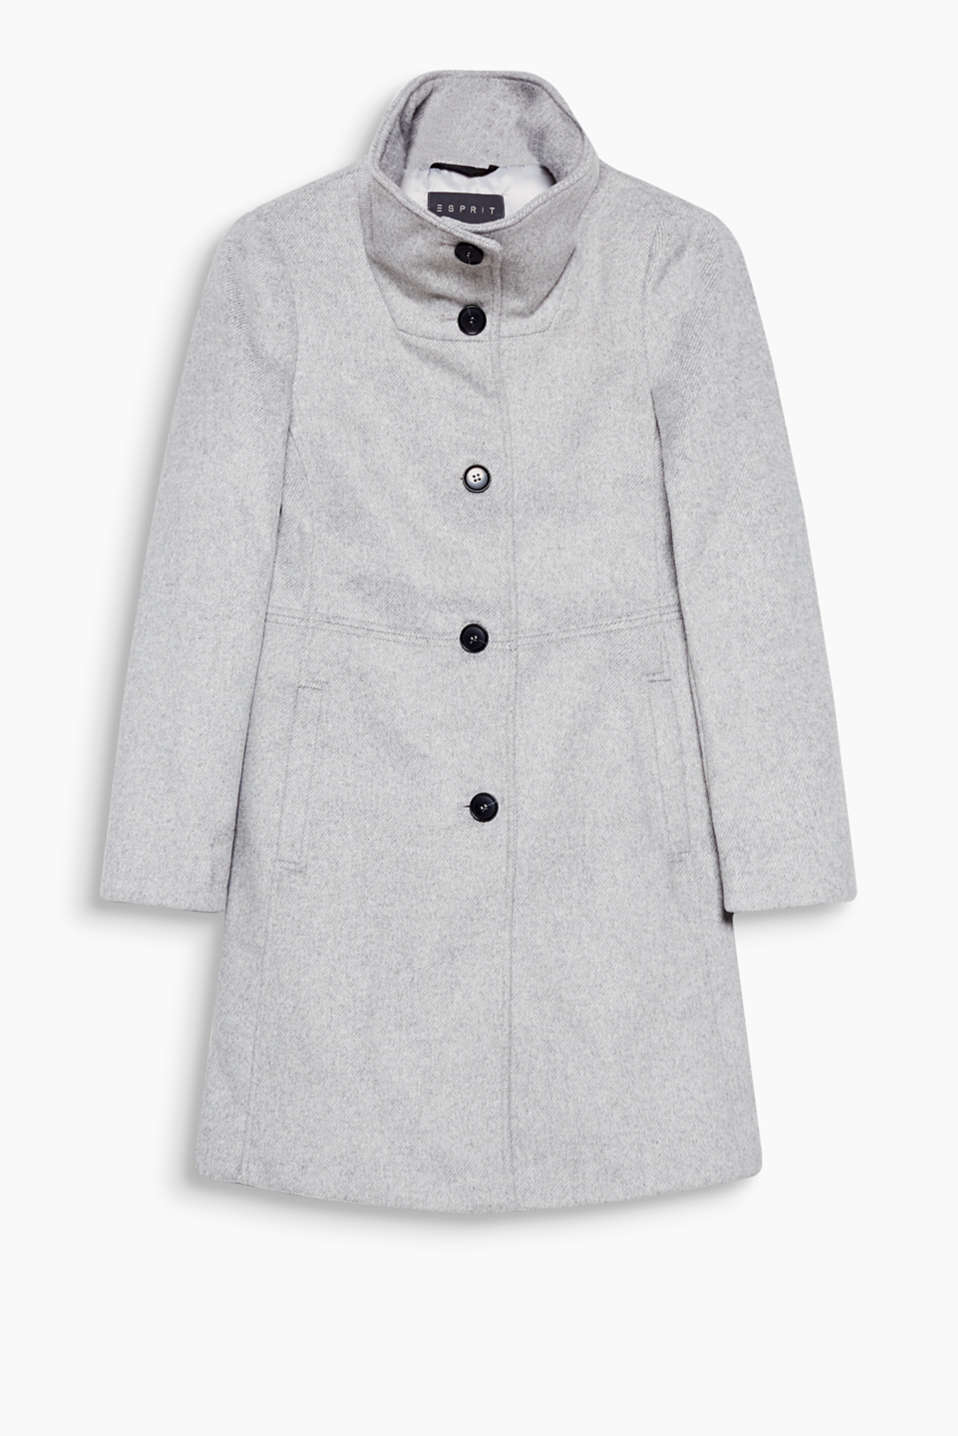 Autumn with a feminine touch – fitted wool blend coat with an on-trend high collar!